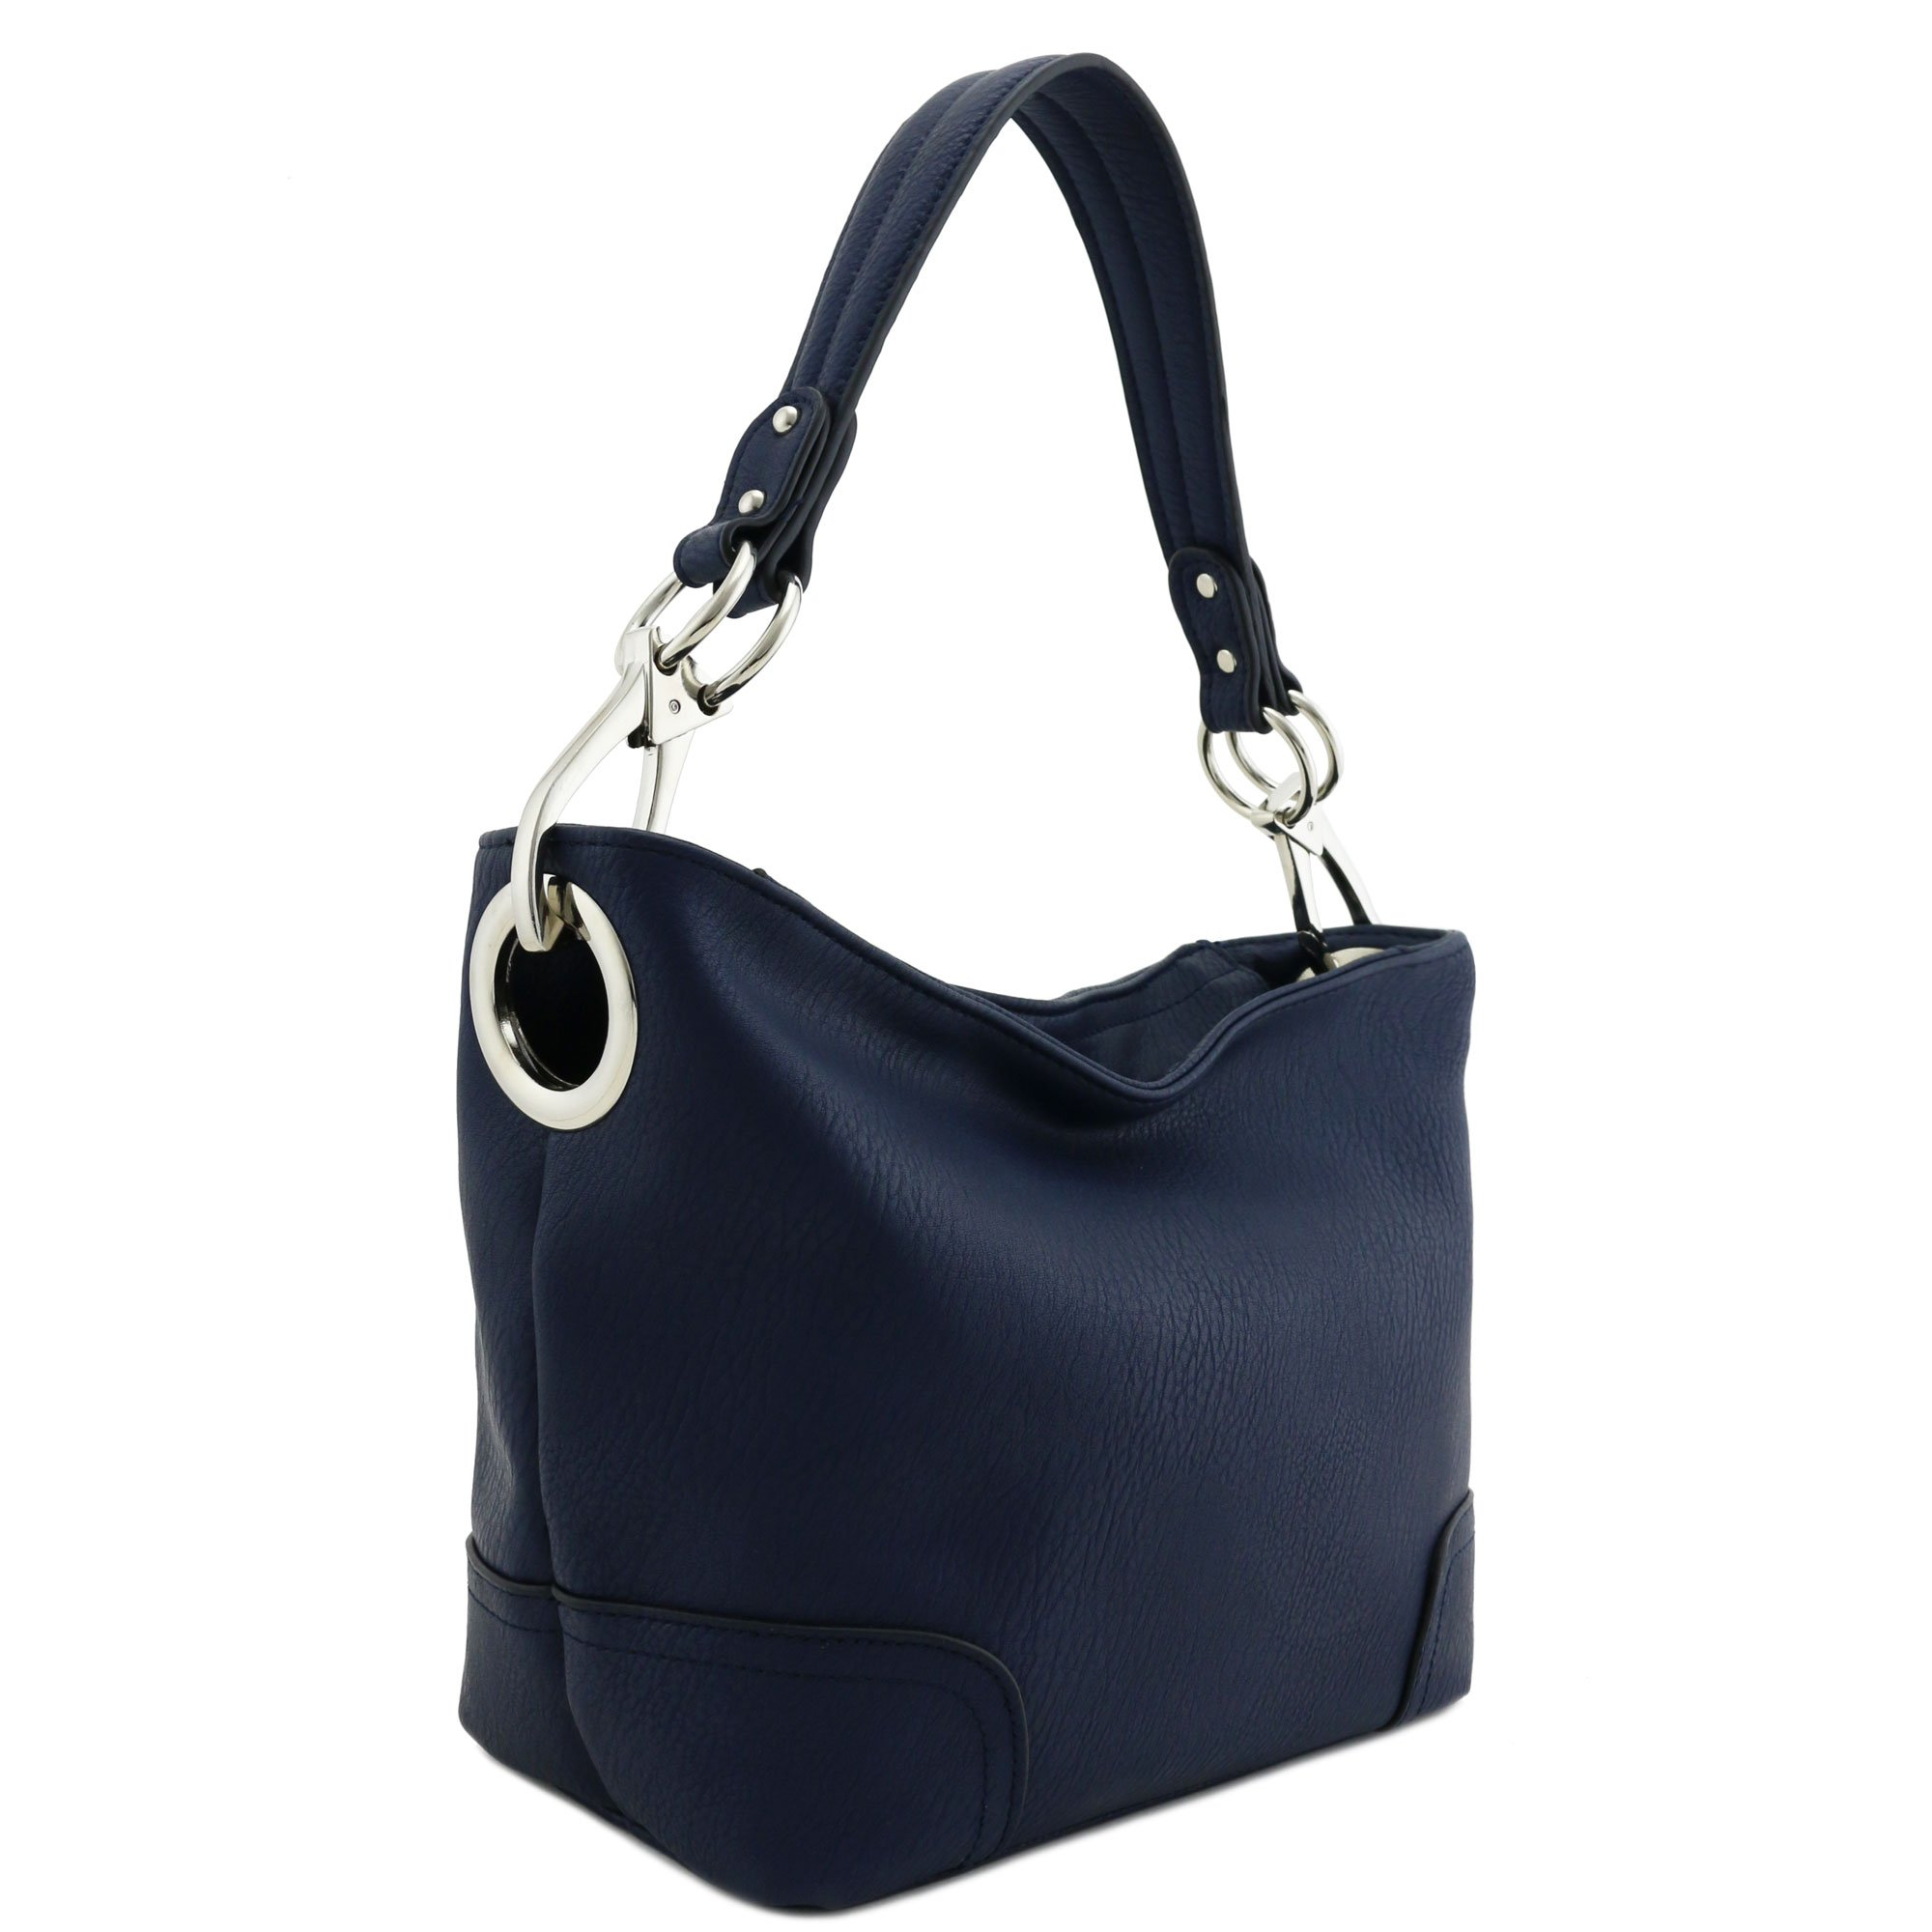 Hobo Shoulder Bag with Snap Hook Hardware Small (Navy)